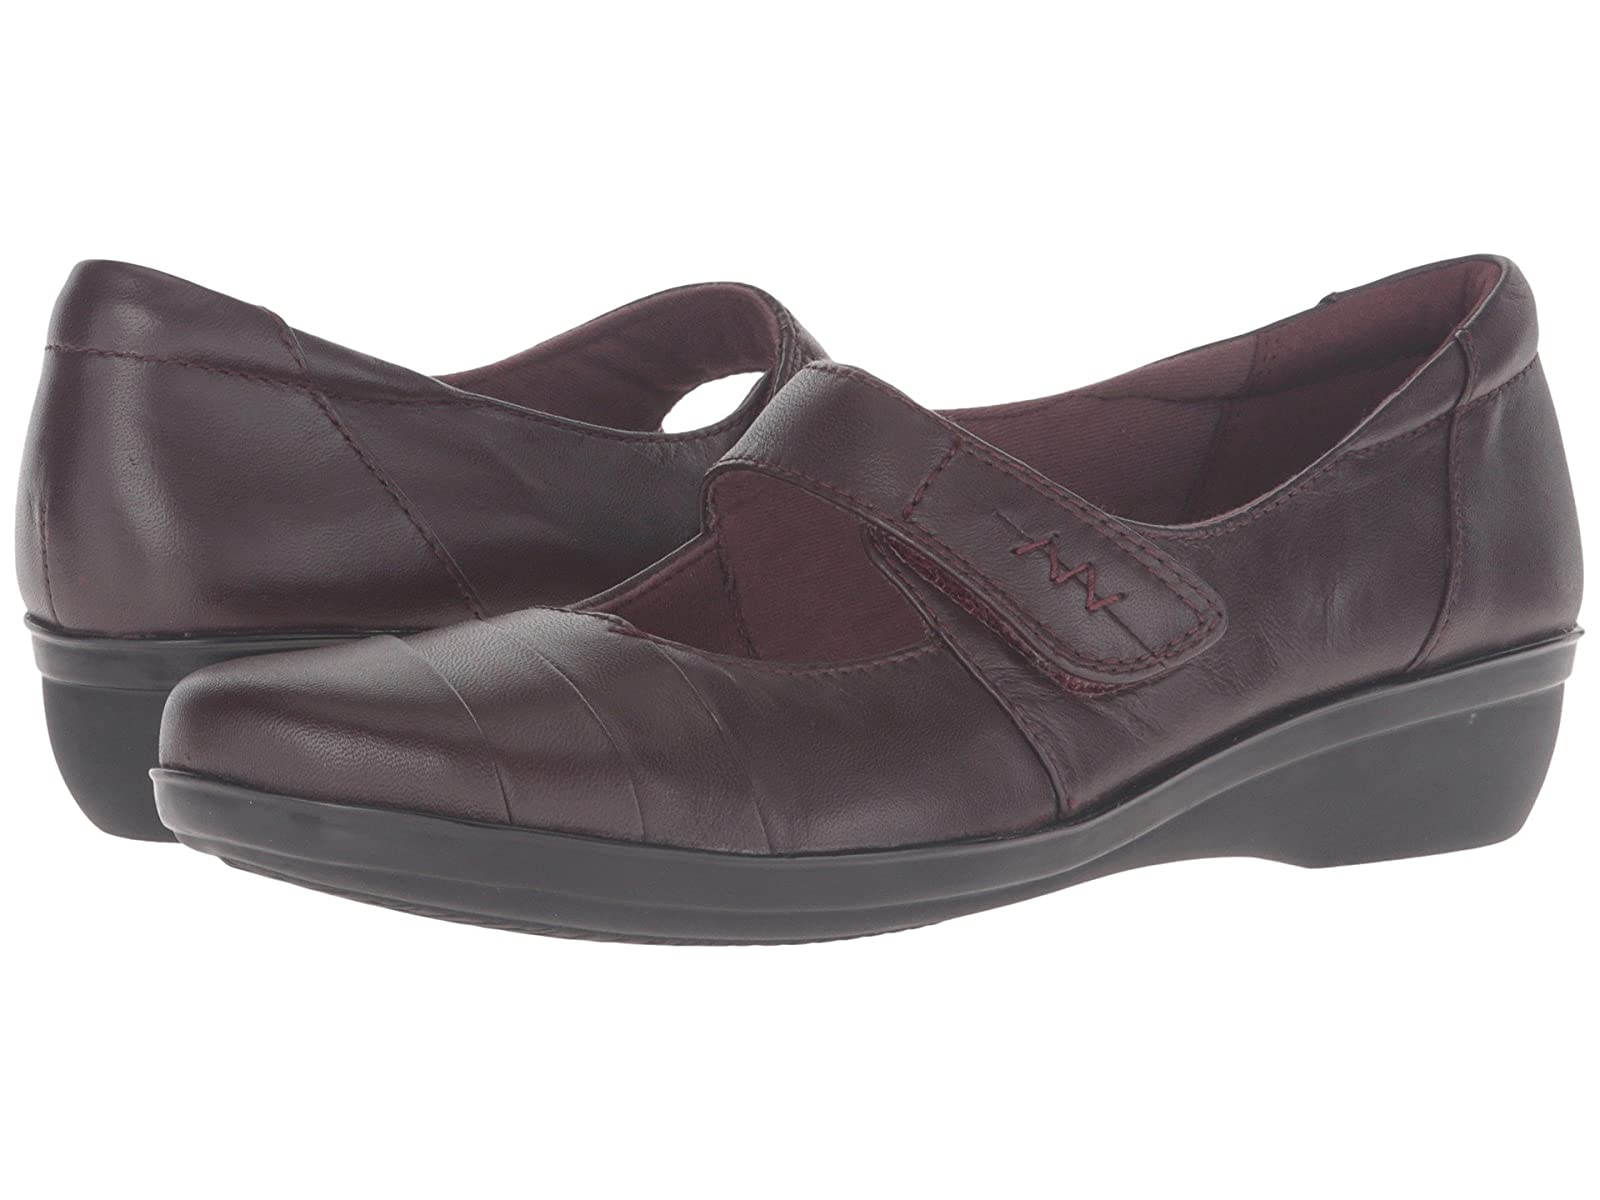 Clarks Everlay KennonCheap and distinctive eye-catching shoes